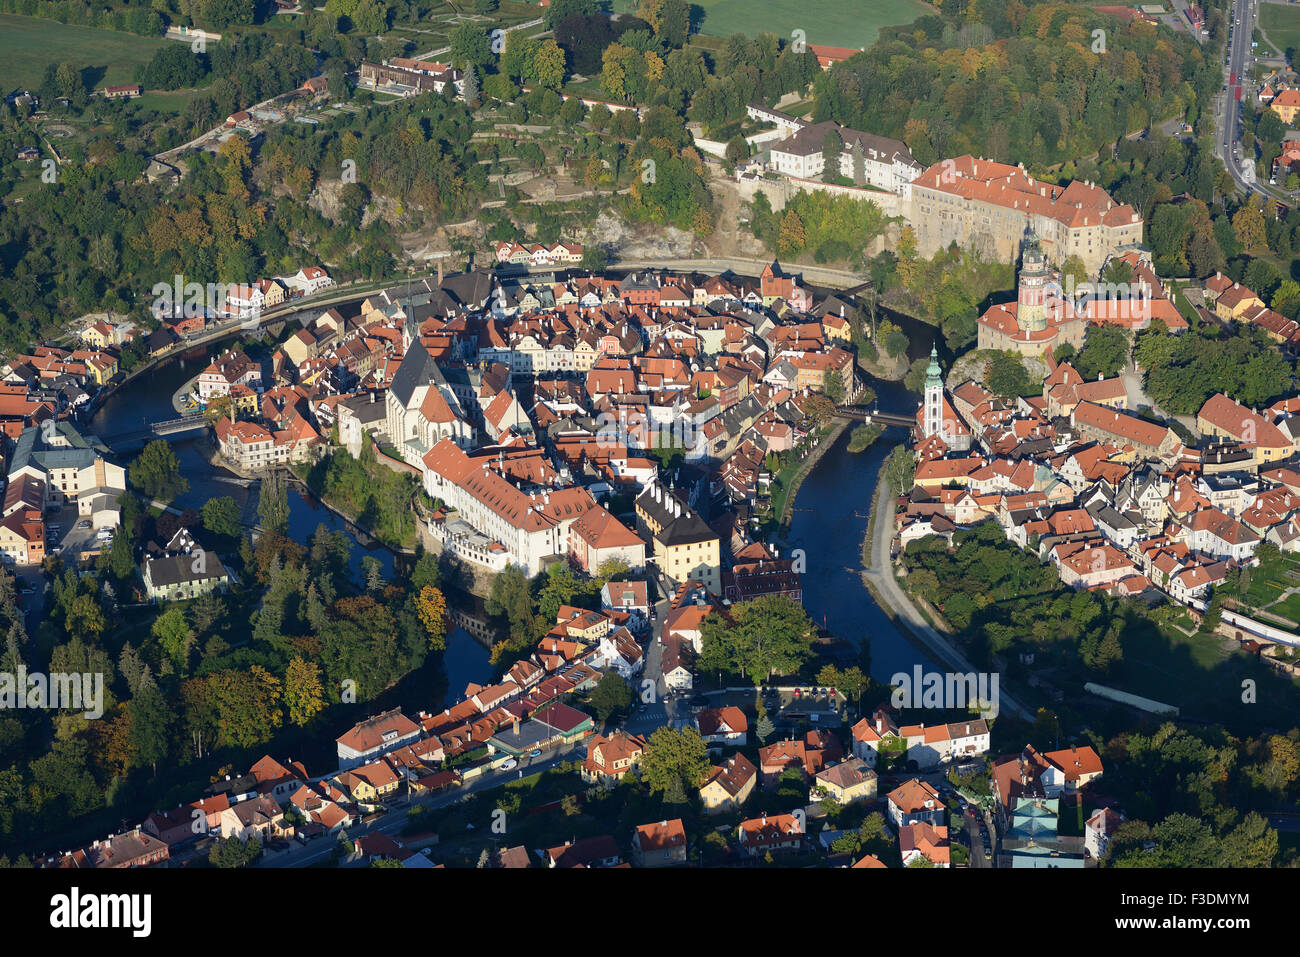 CASTLE OVERLOOKING A MEDIEVAL CITY WITHIN A MEANDER (aerial view). Ceský Krumlov, Bohemia, Czech Republic. - Stock Image